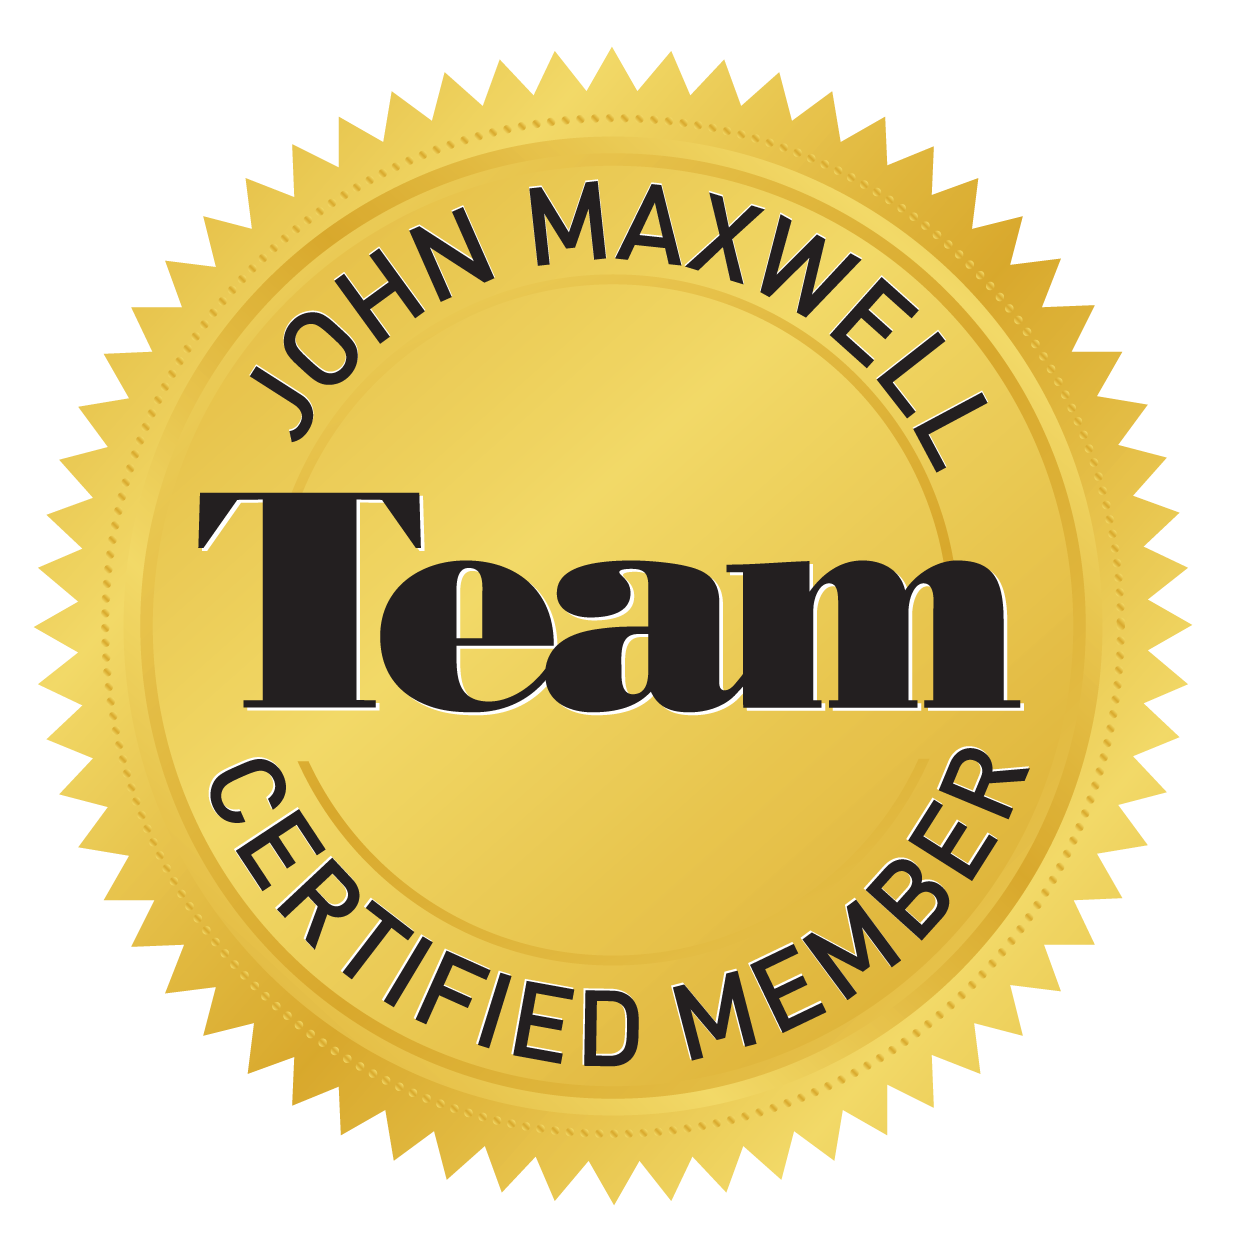 Certified Speaker, Trainer, and Coach with the John Maxwell Team